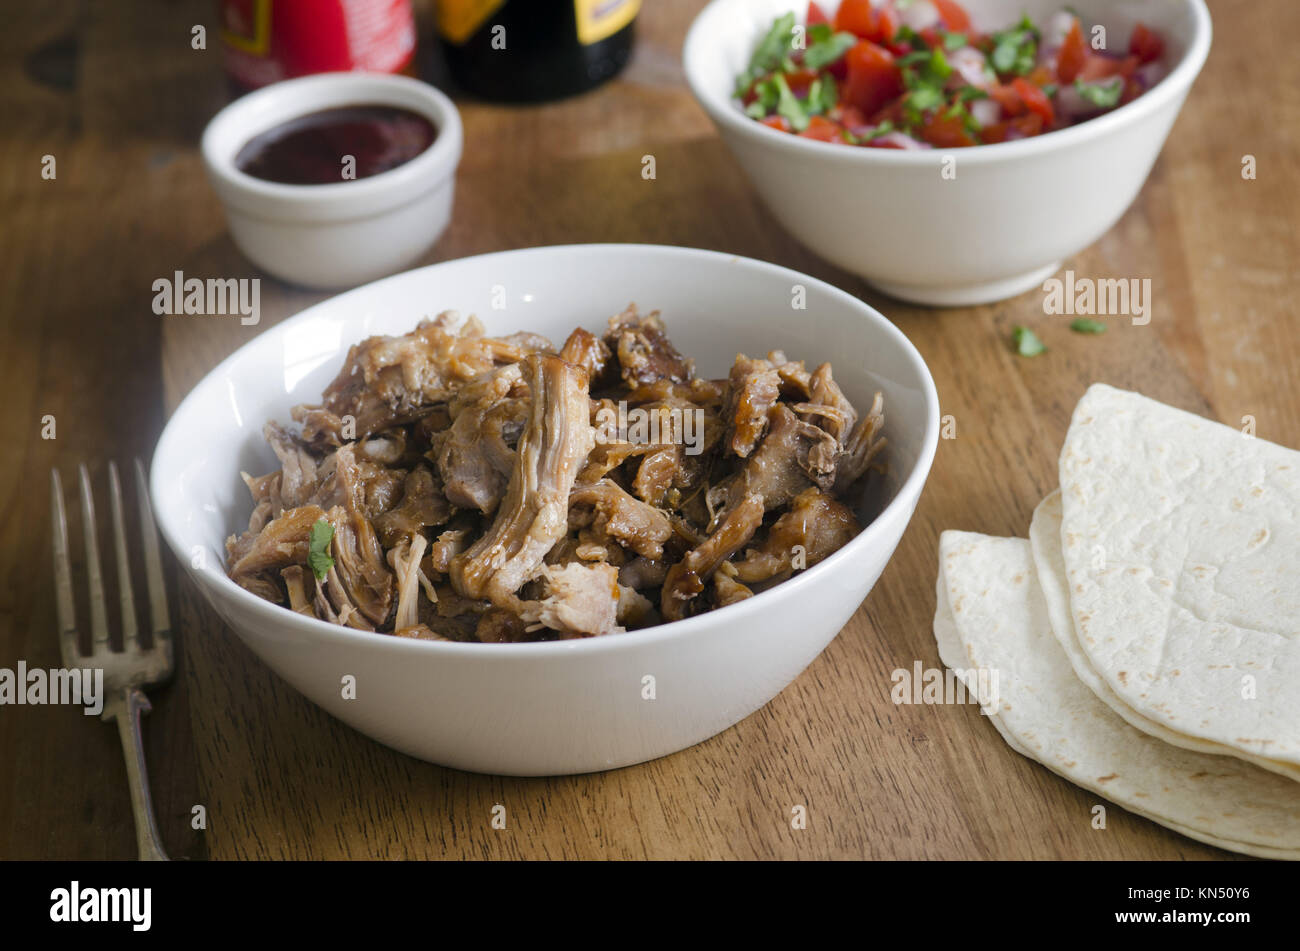 Slow-cooker chipotle pulled pork with salsa. - Stock Image